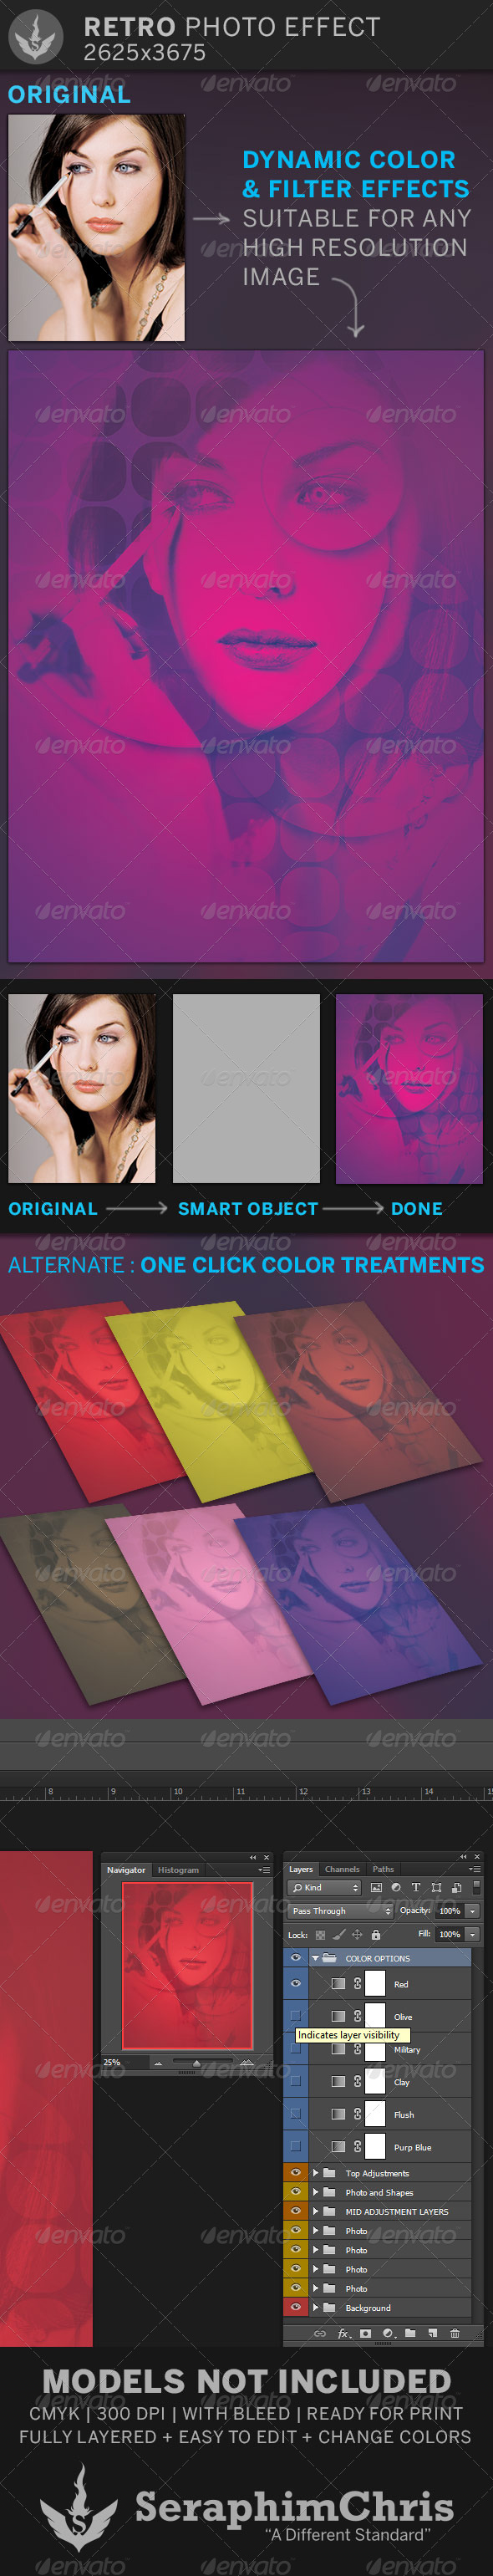 GraphicRiver Retro Photo Effect Template 6728599